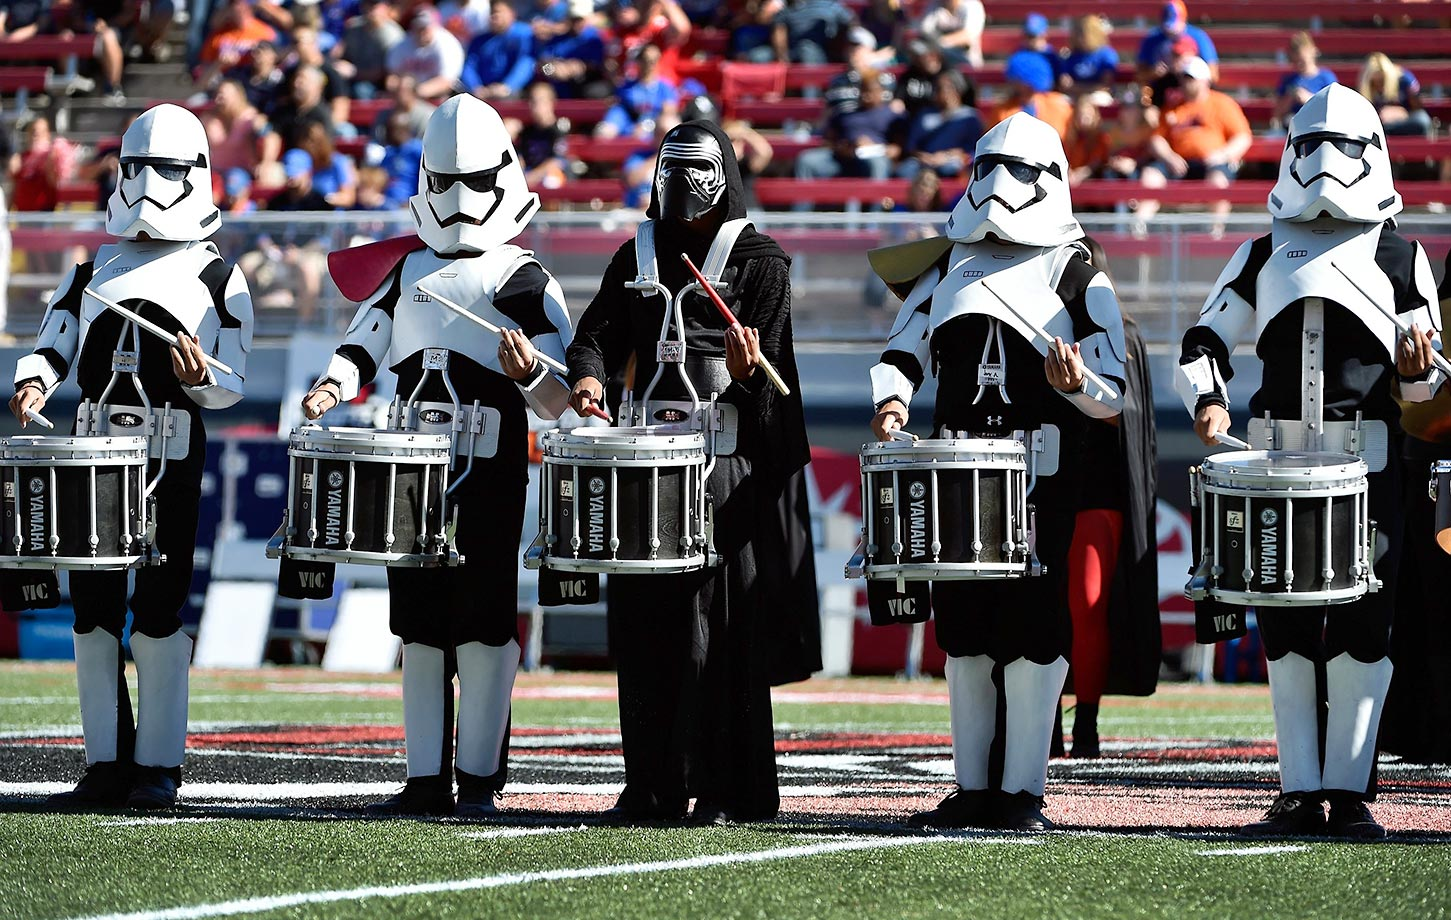 The UNLV Rebels marching band dressed up in Star Wars costumes at a game against Boise State.